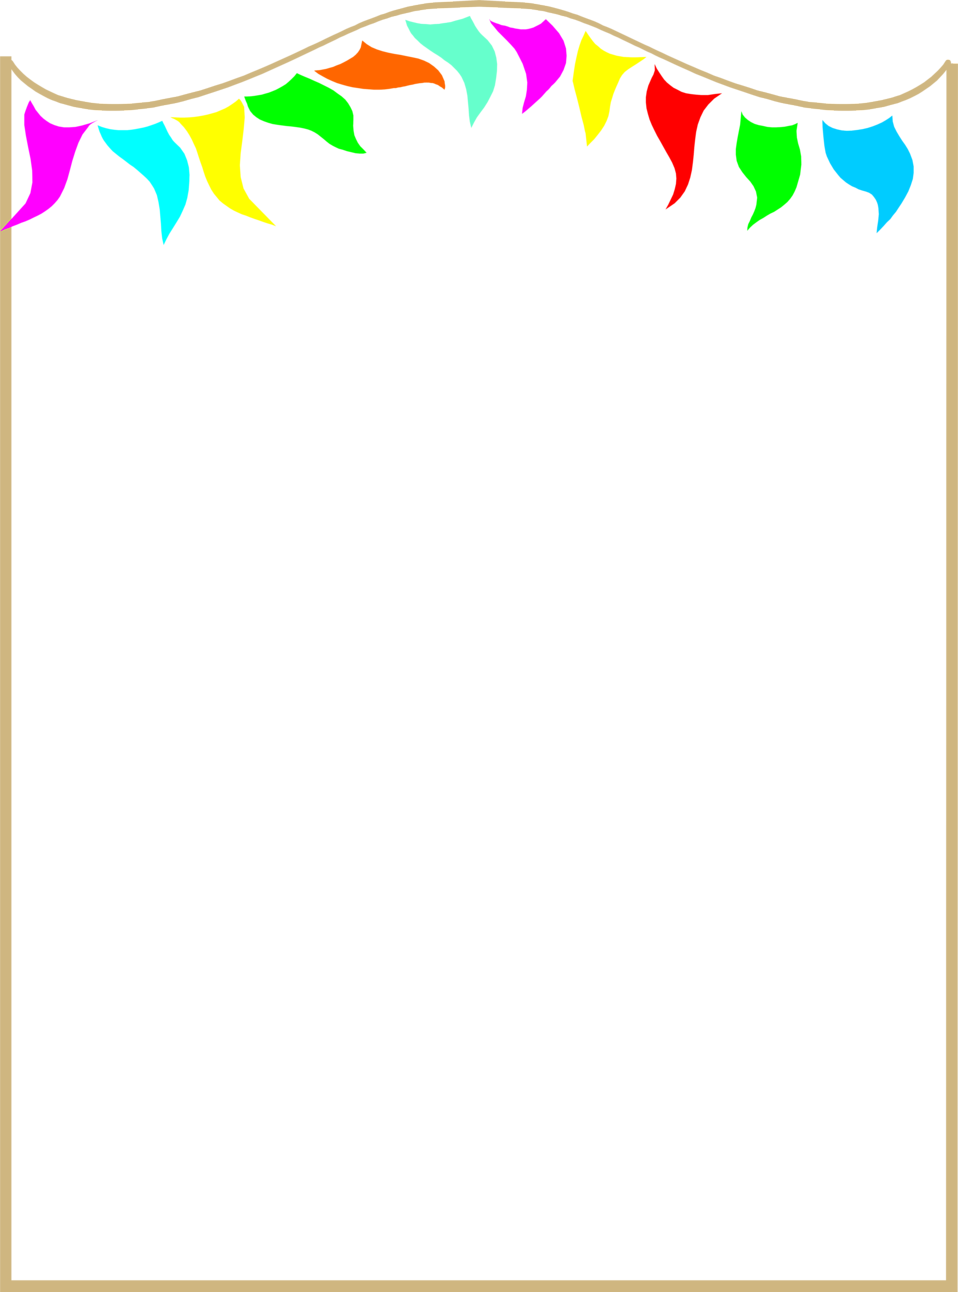 Illustration of a blank frame border with colorful pennants : Free Stock Photo